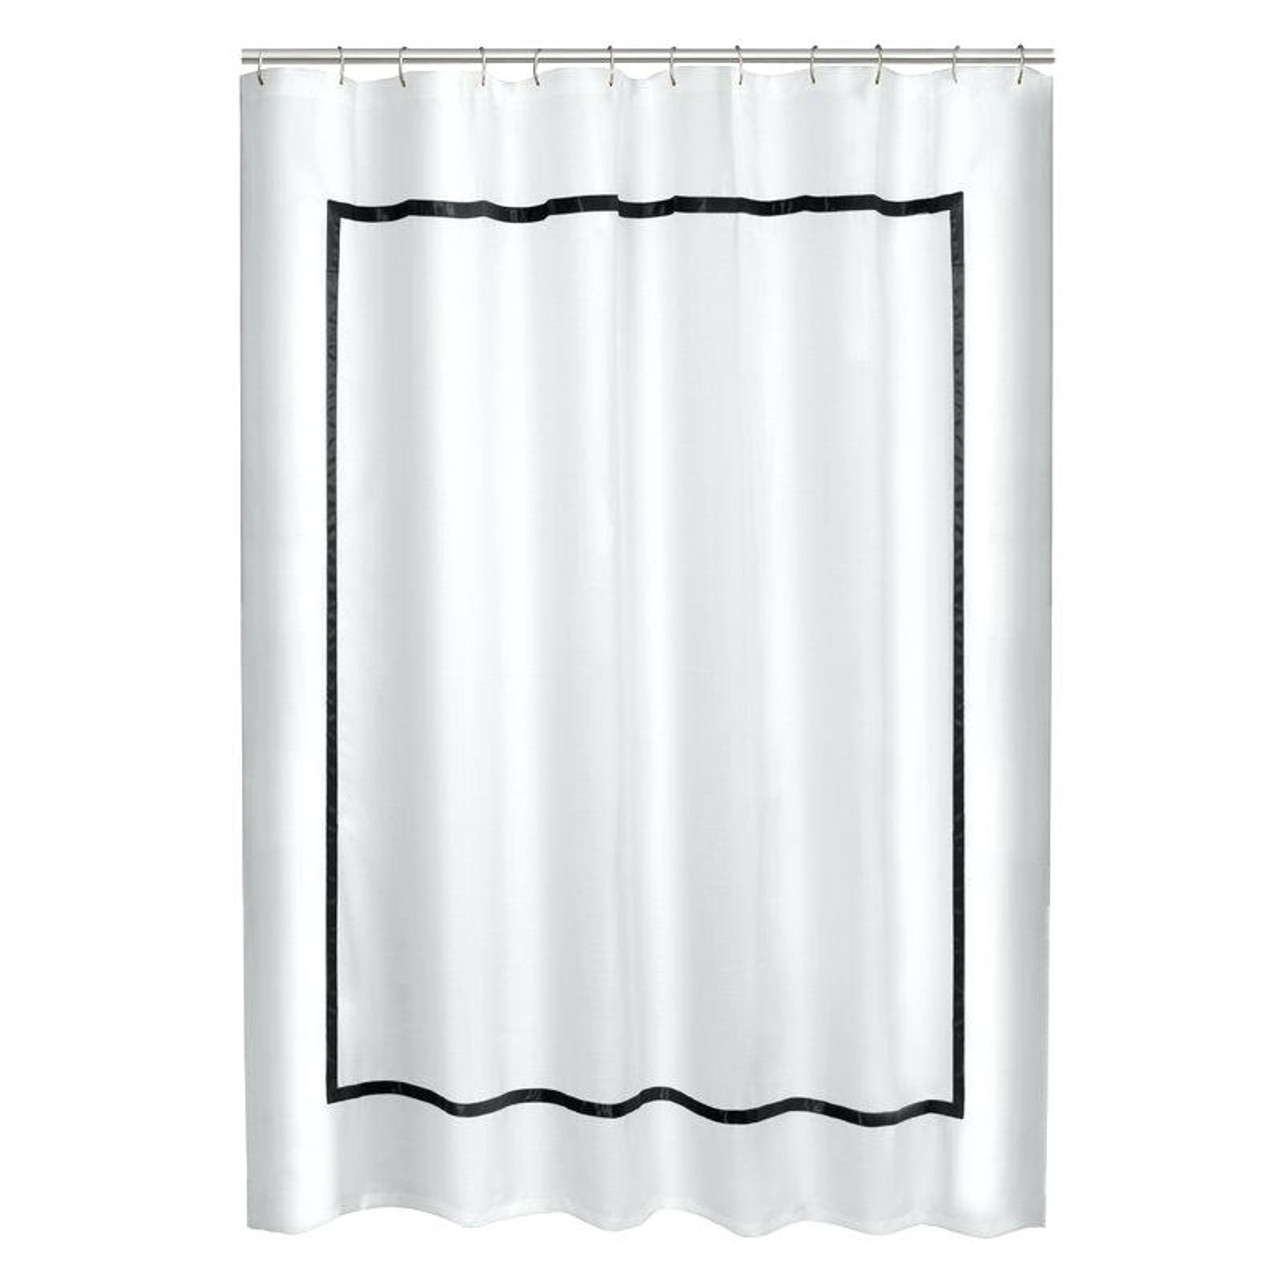 Natural Linen Shower Curtain With Frame Border 45 Linen Fabric Choices